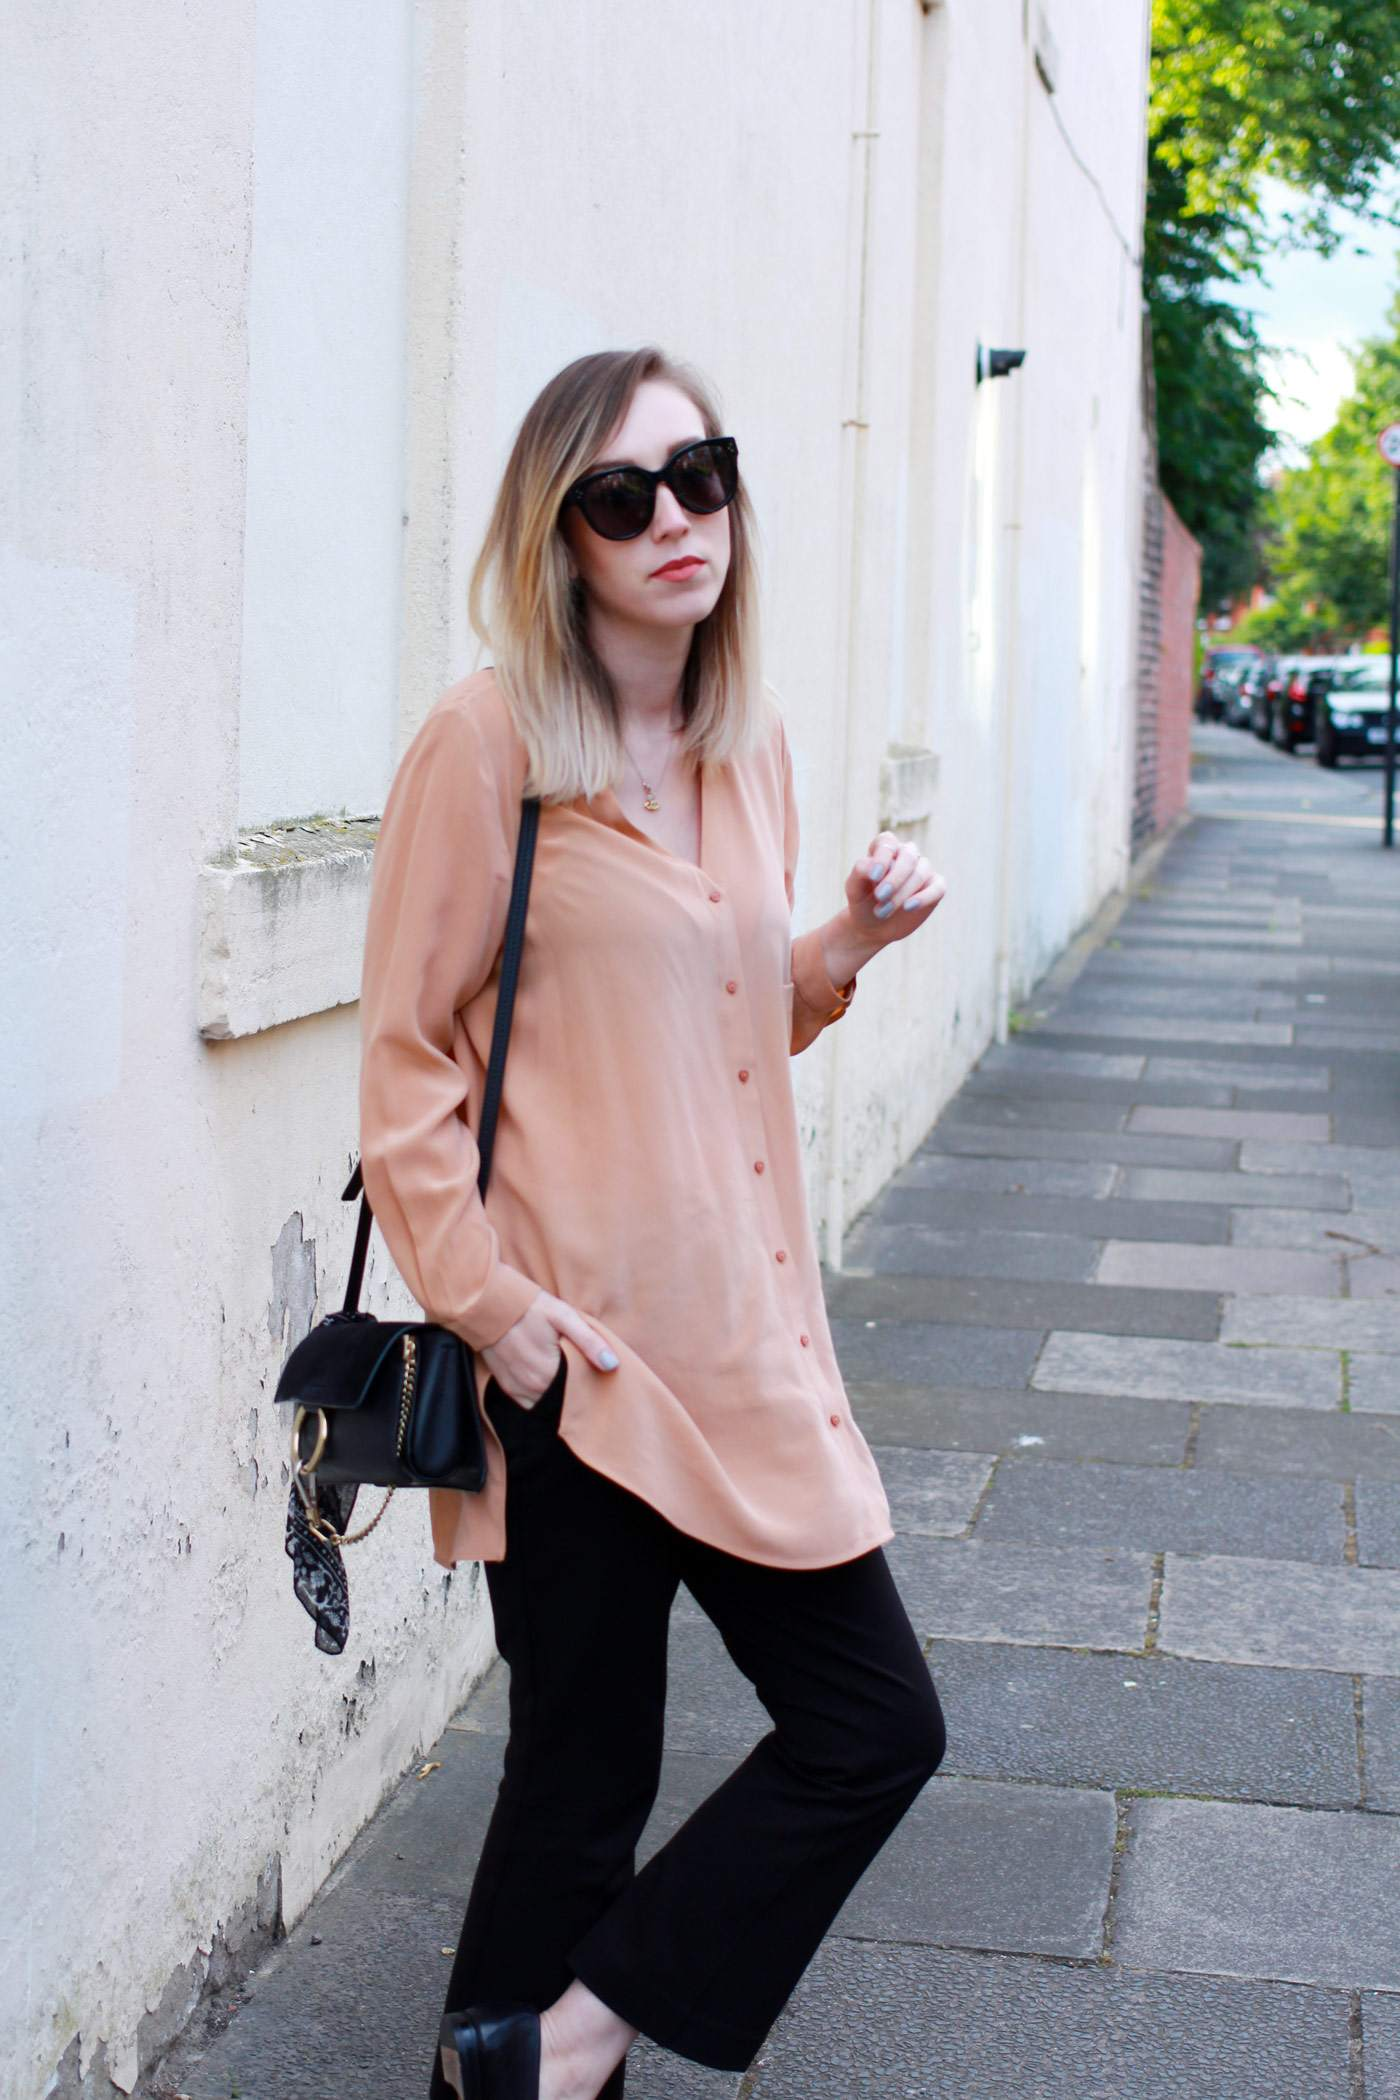 Boden-flared-trousers-COS-peach-shirt-Chloe-faye-bag-black-gucci-loafers-5